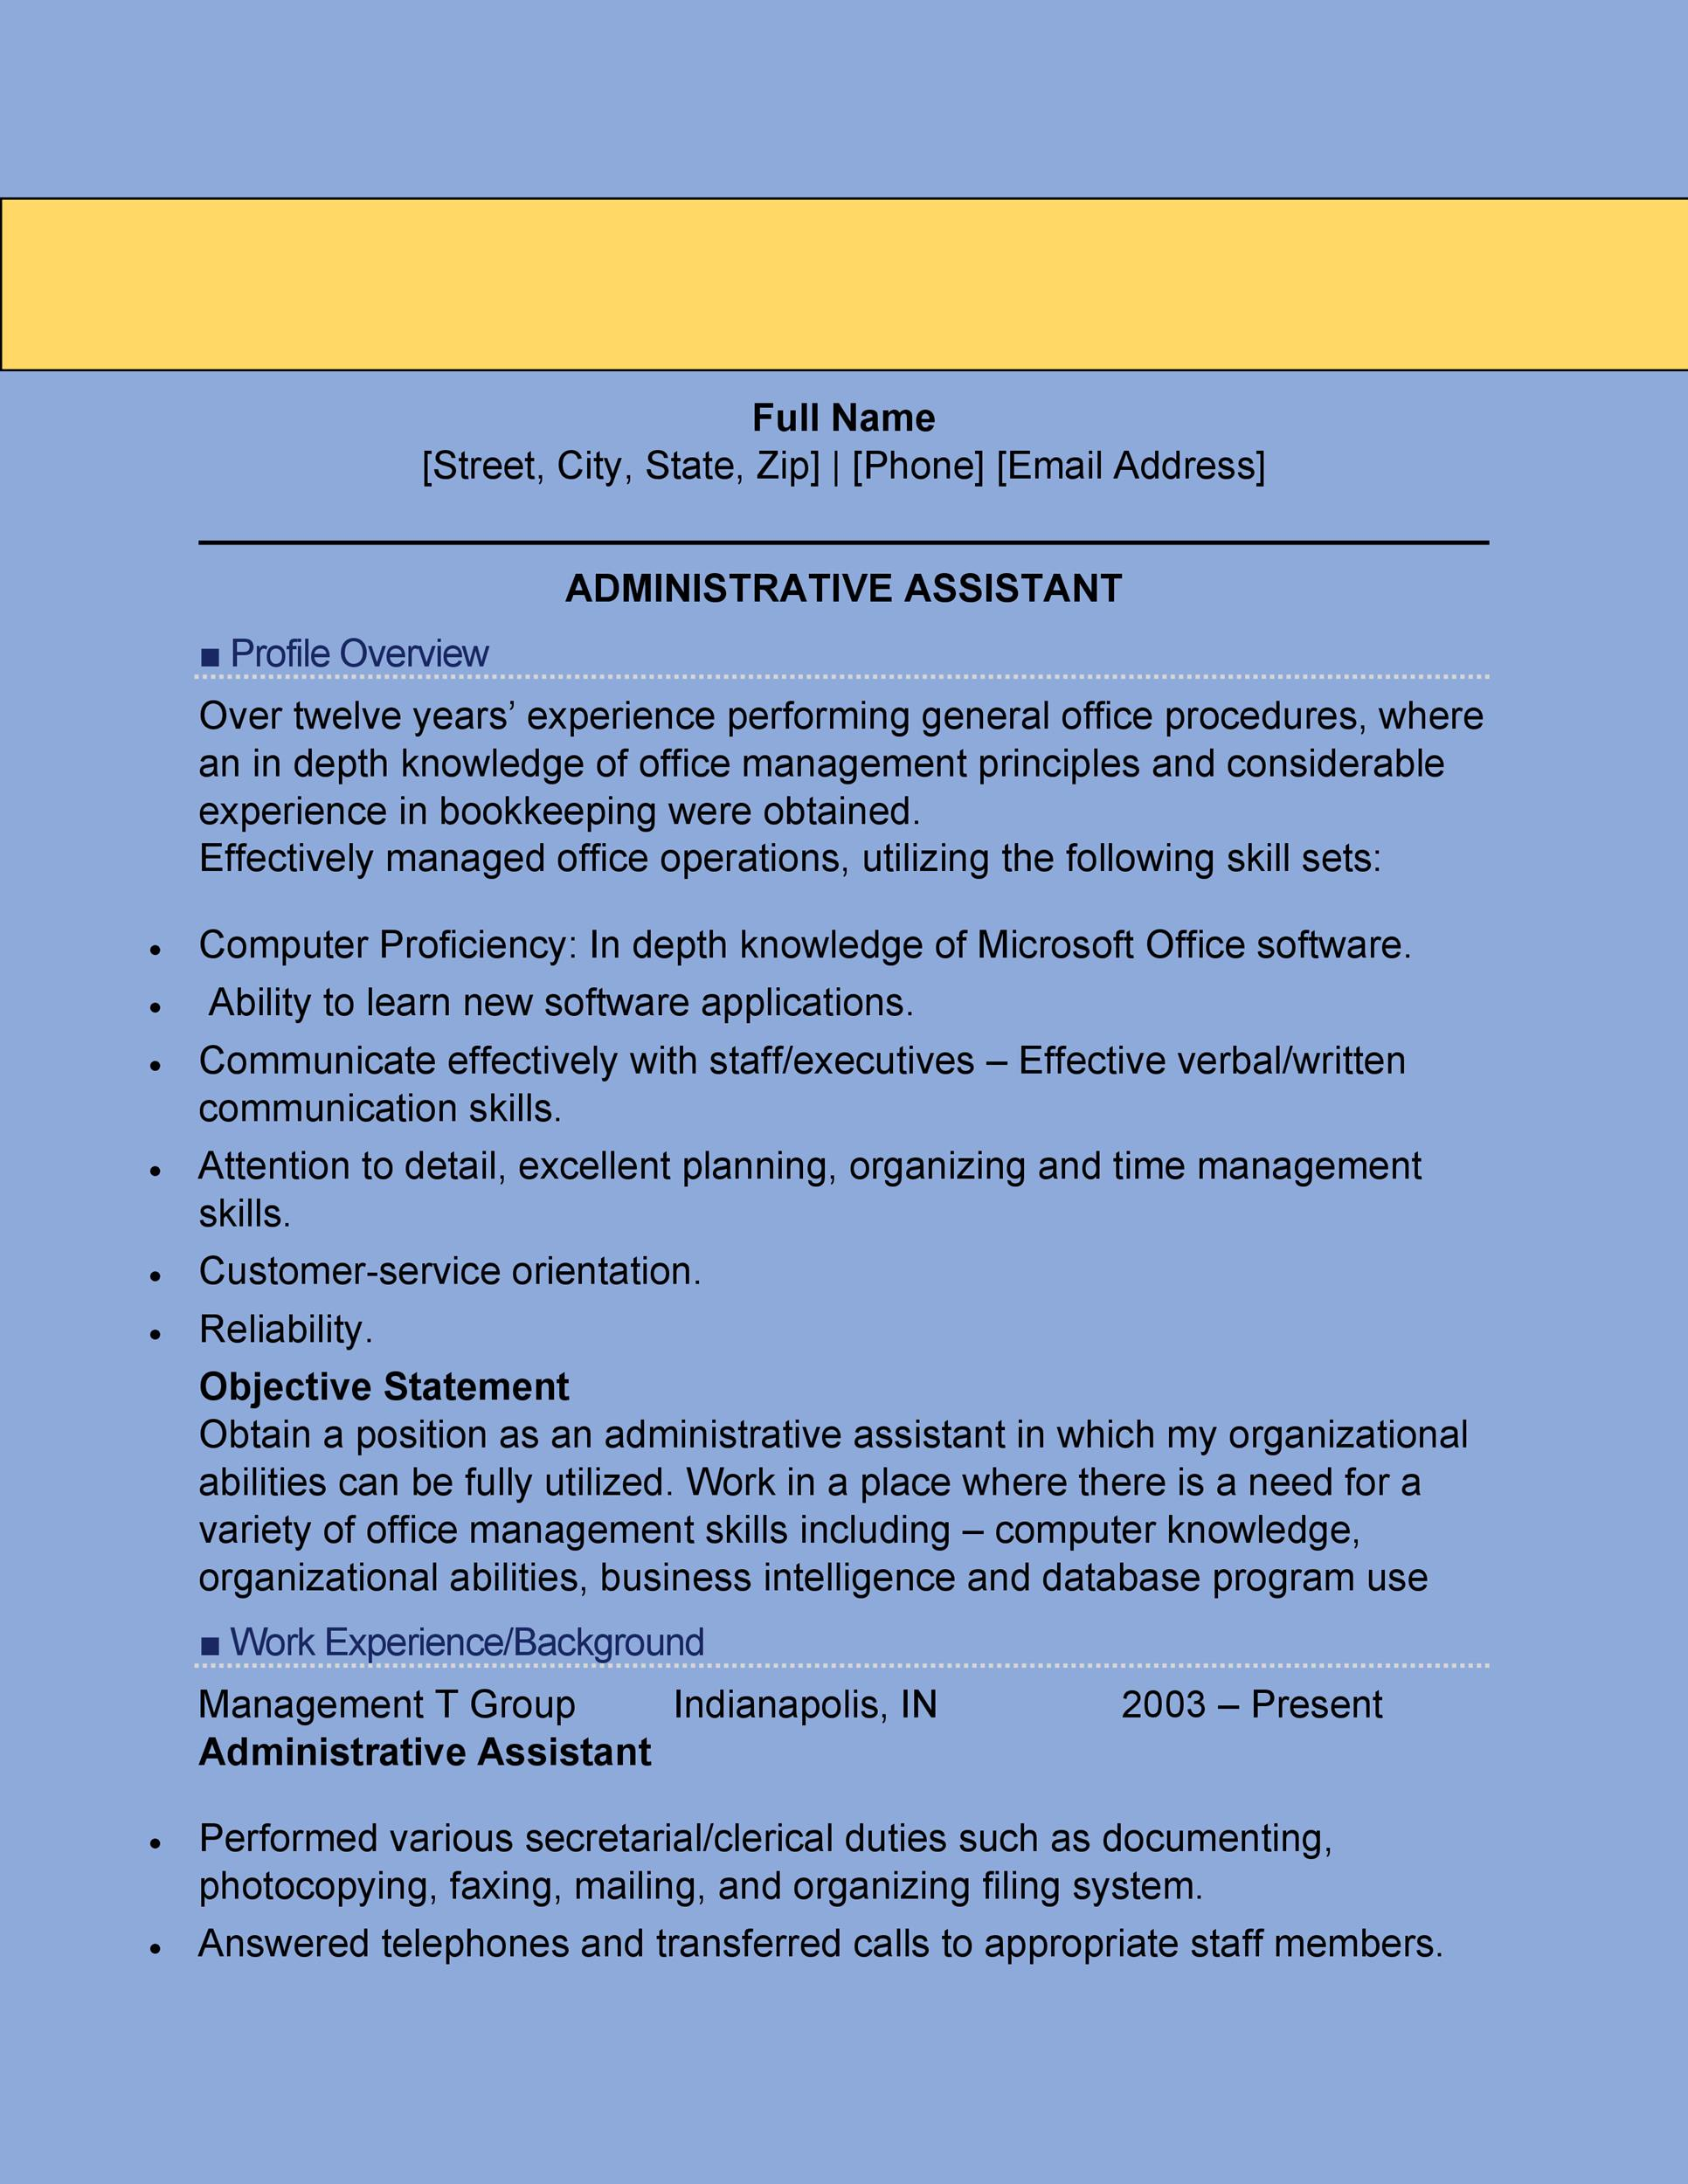 Free Administrative Assistant Resume Template 02